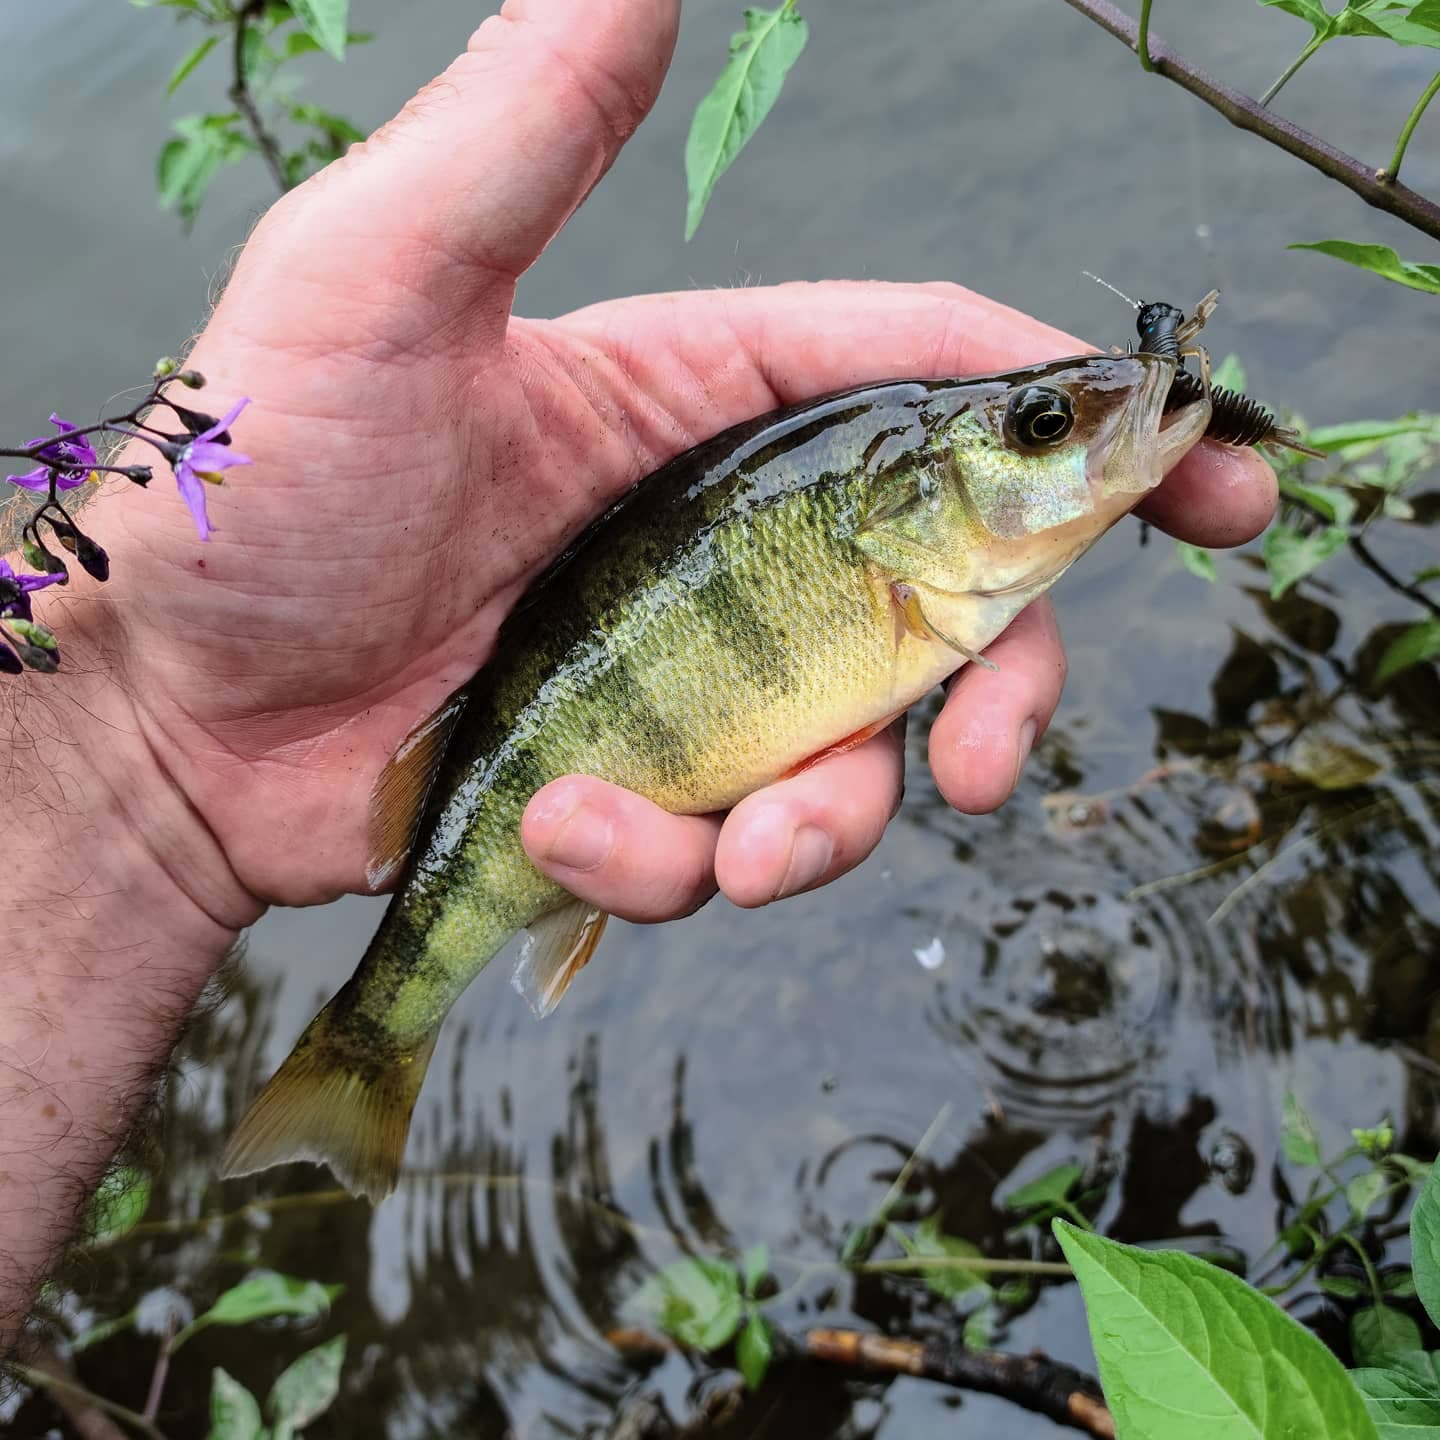 Yellow Perch caughtwith Micro Finesse Anisoptera. Michael R photo.